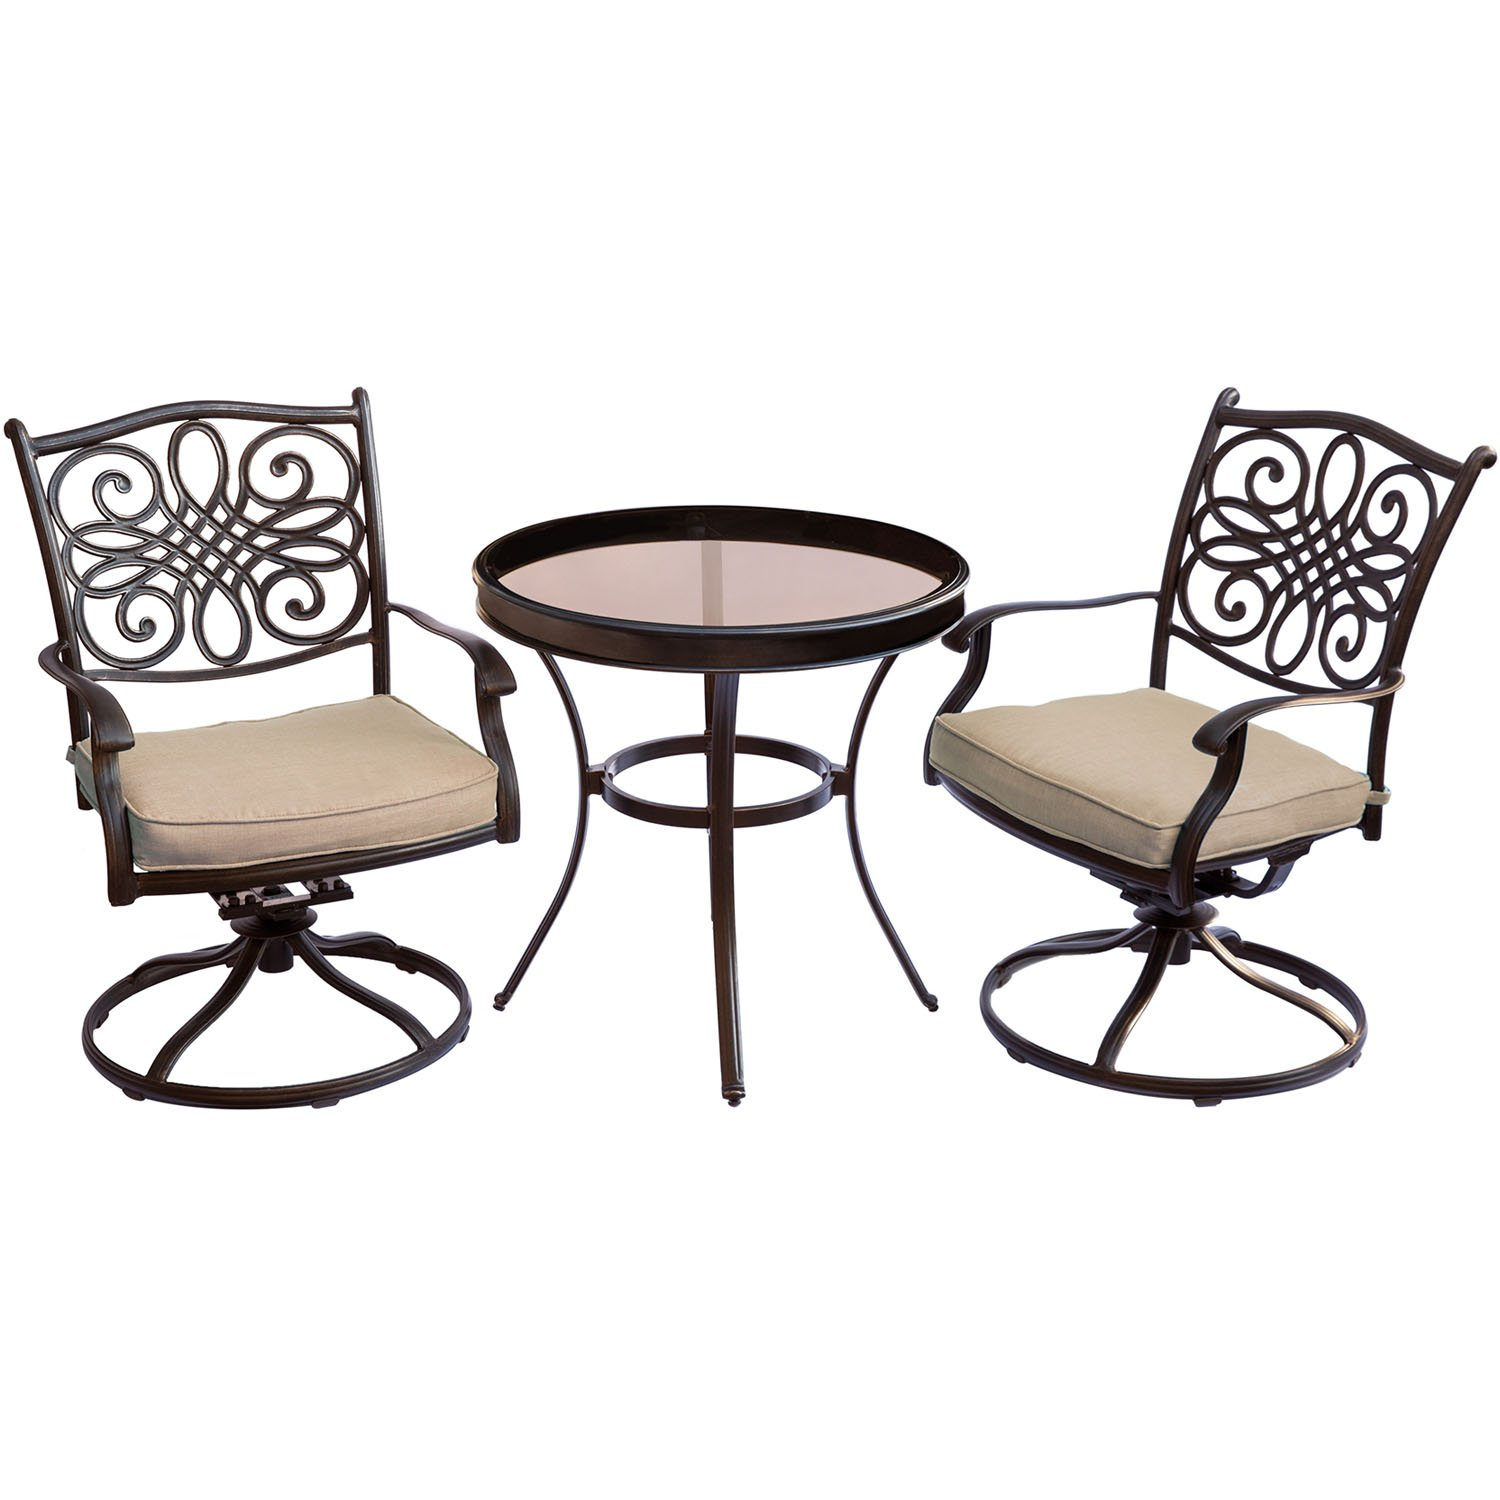 Hanover Traditions TRADDN3PCSWG 3-Piece Swivel Bistro Set in Tan with 30 in. Glass-top Table Outdoor Patio Furniture